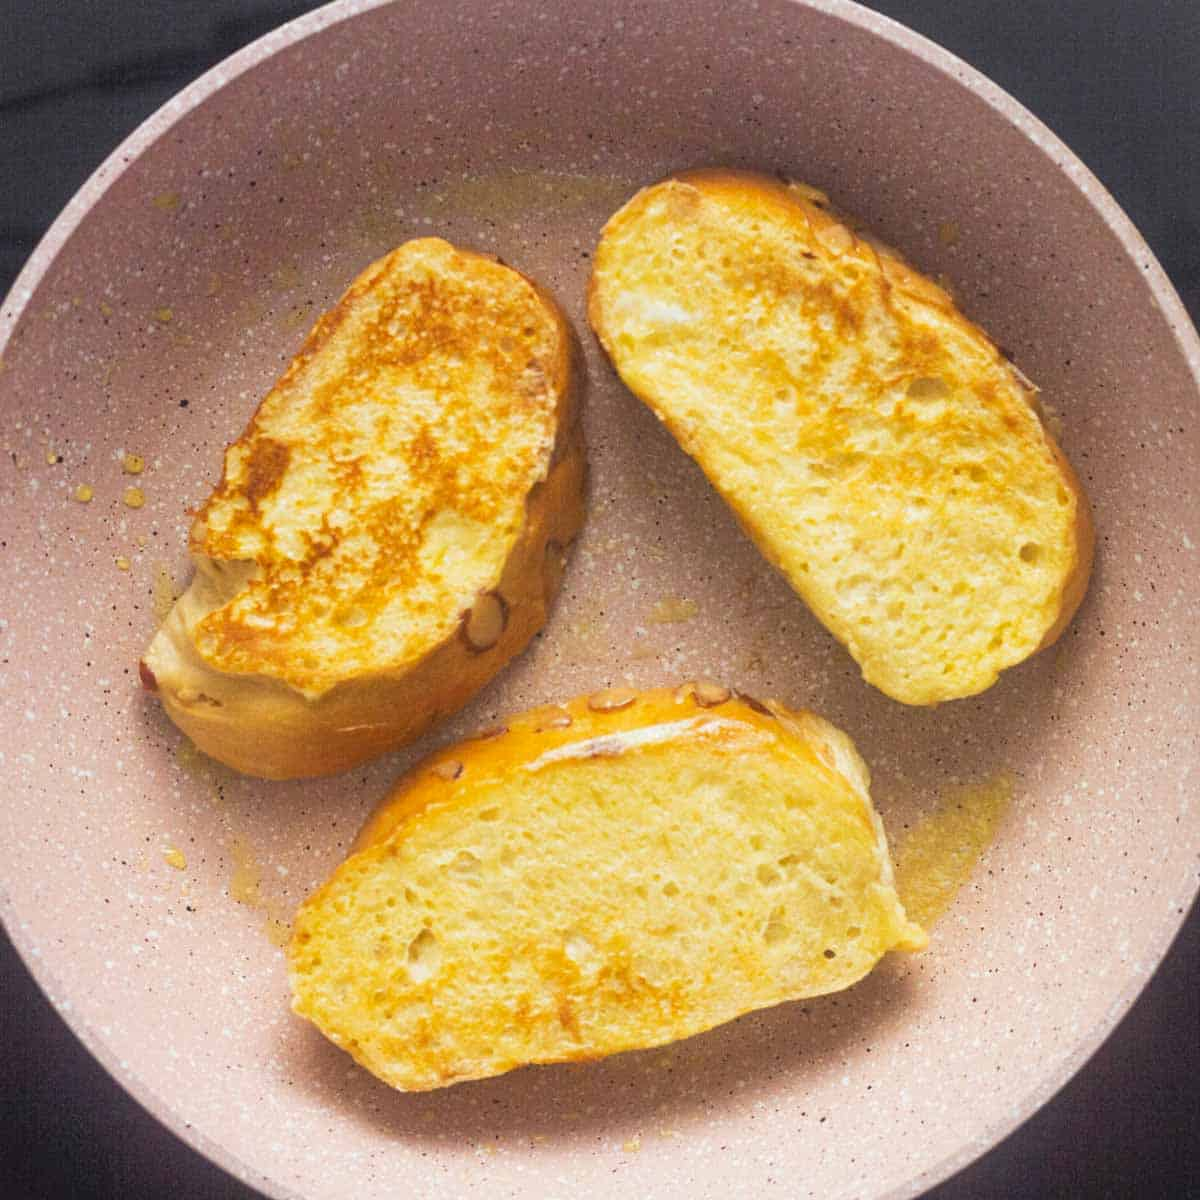 cooked french toast on frying pan